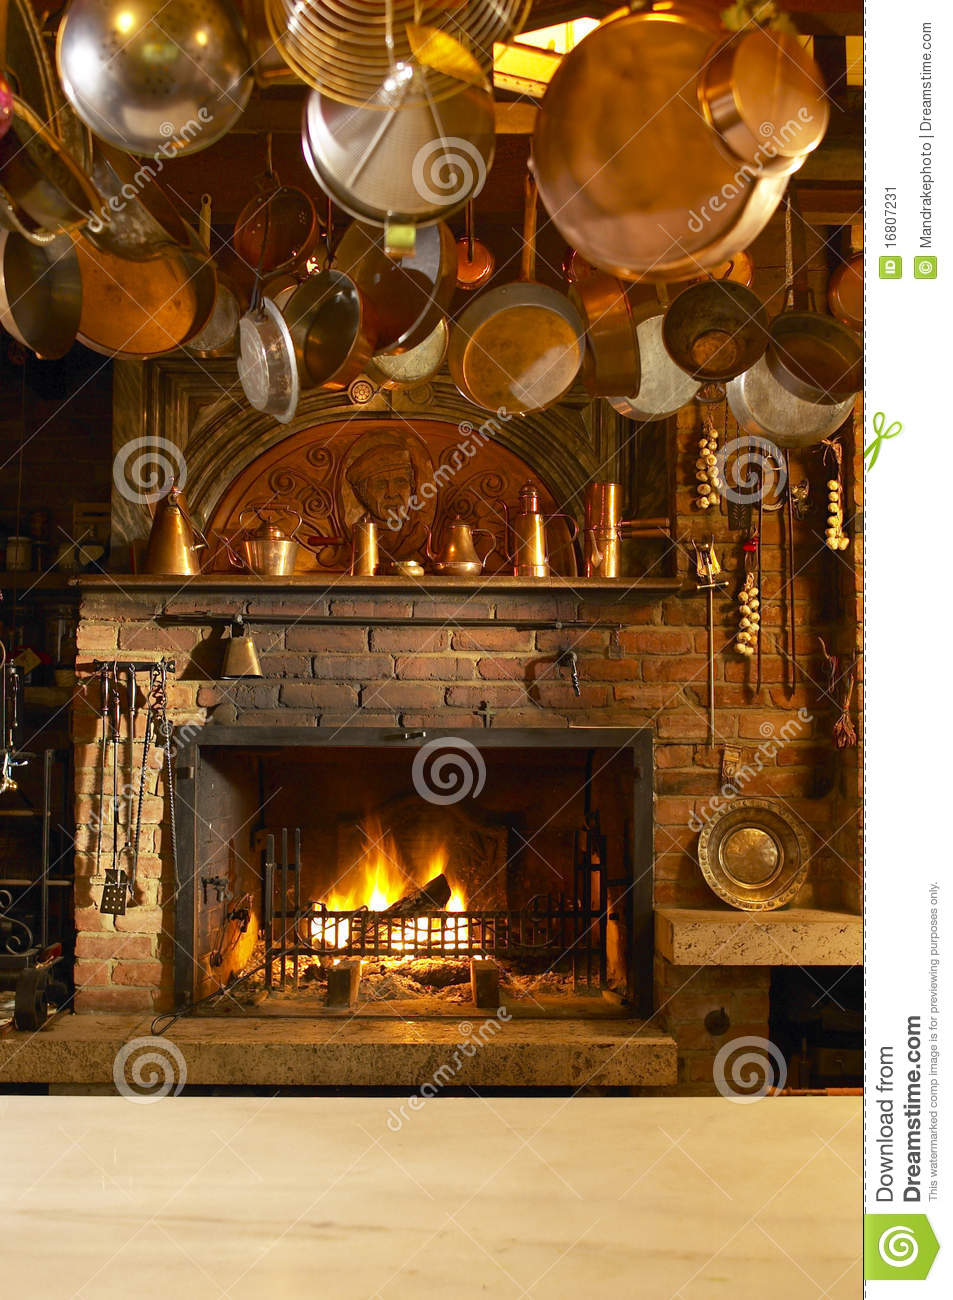 Antique Kitchen With Fireplace Stock Image  Image 16807231